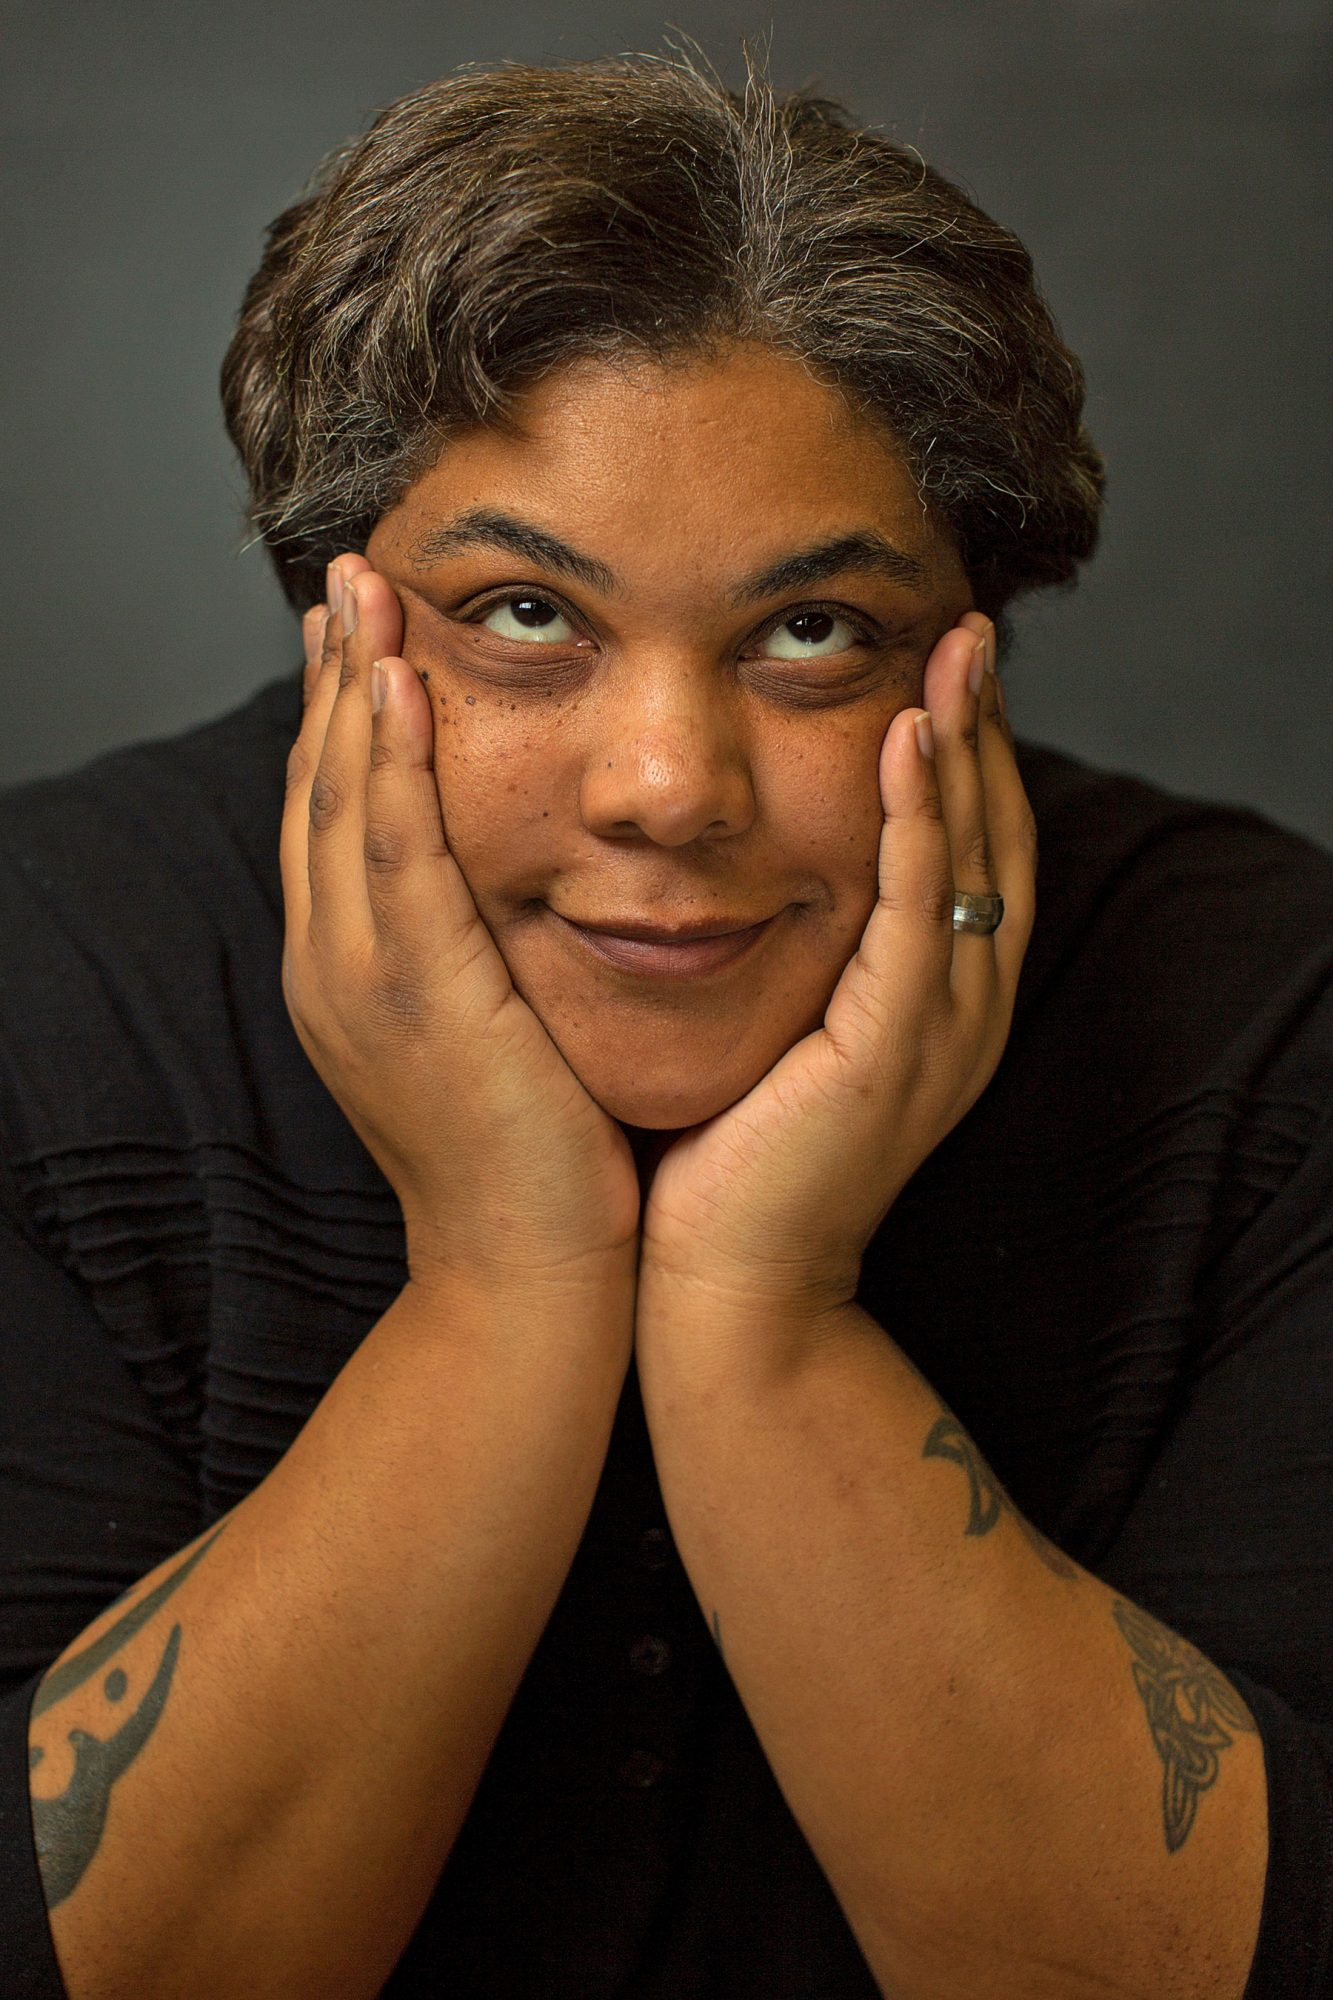 Roxane Gay author of Hunger: A Memoir of (My) Body (6/13/17)